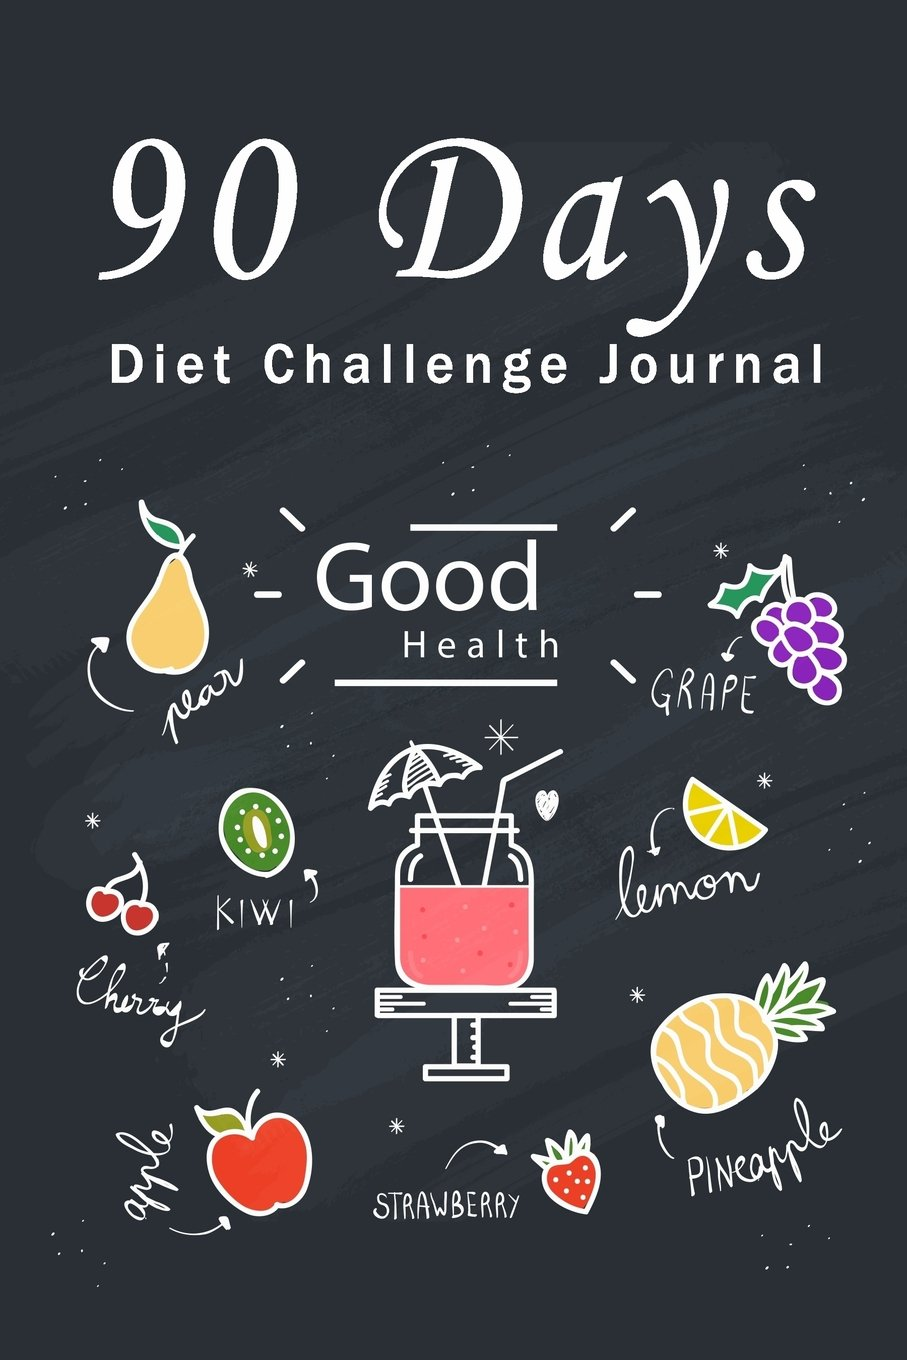 90 Days Diet Challenge Journal: Personal Food Exercise Weight Loss